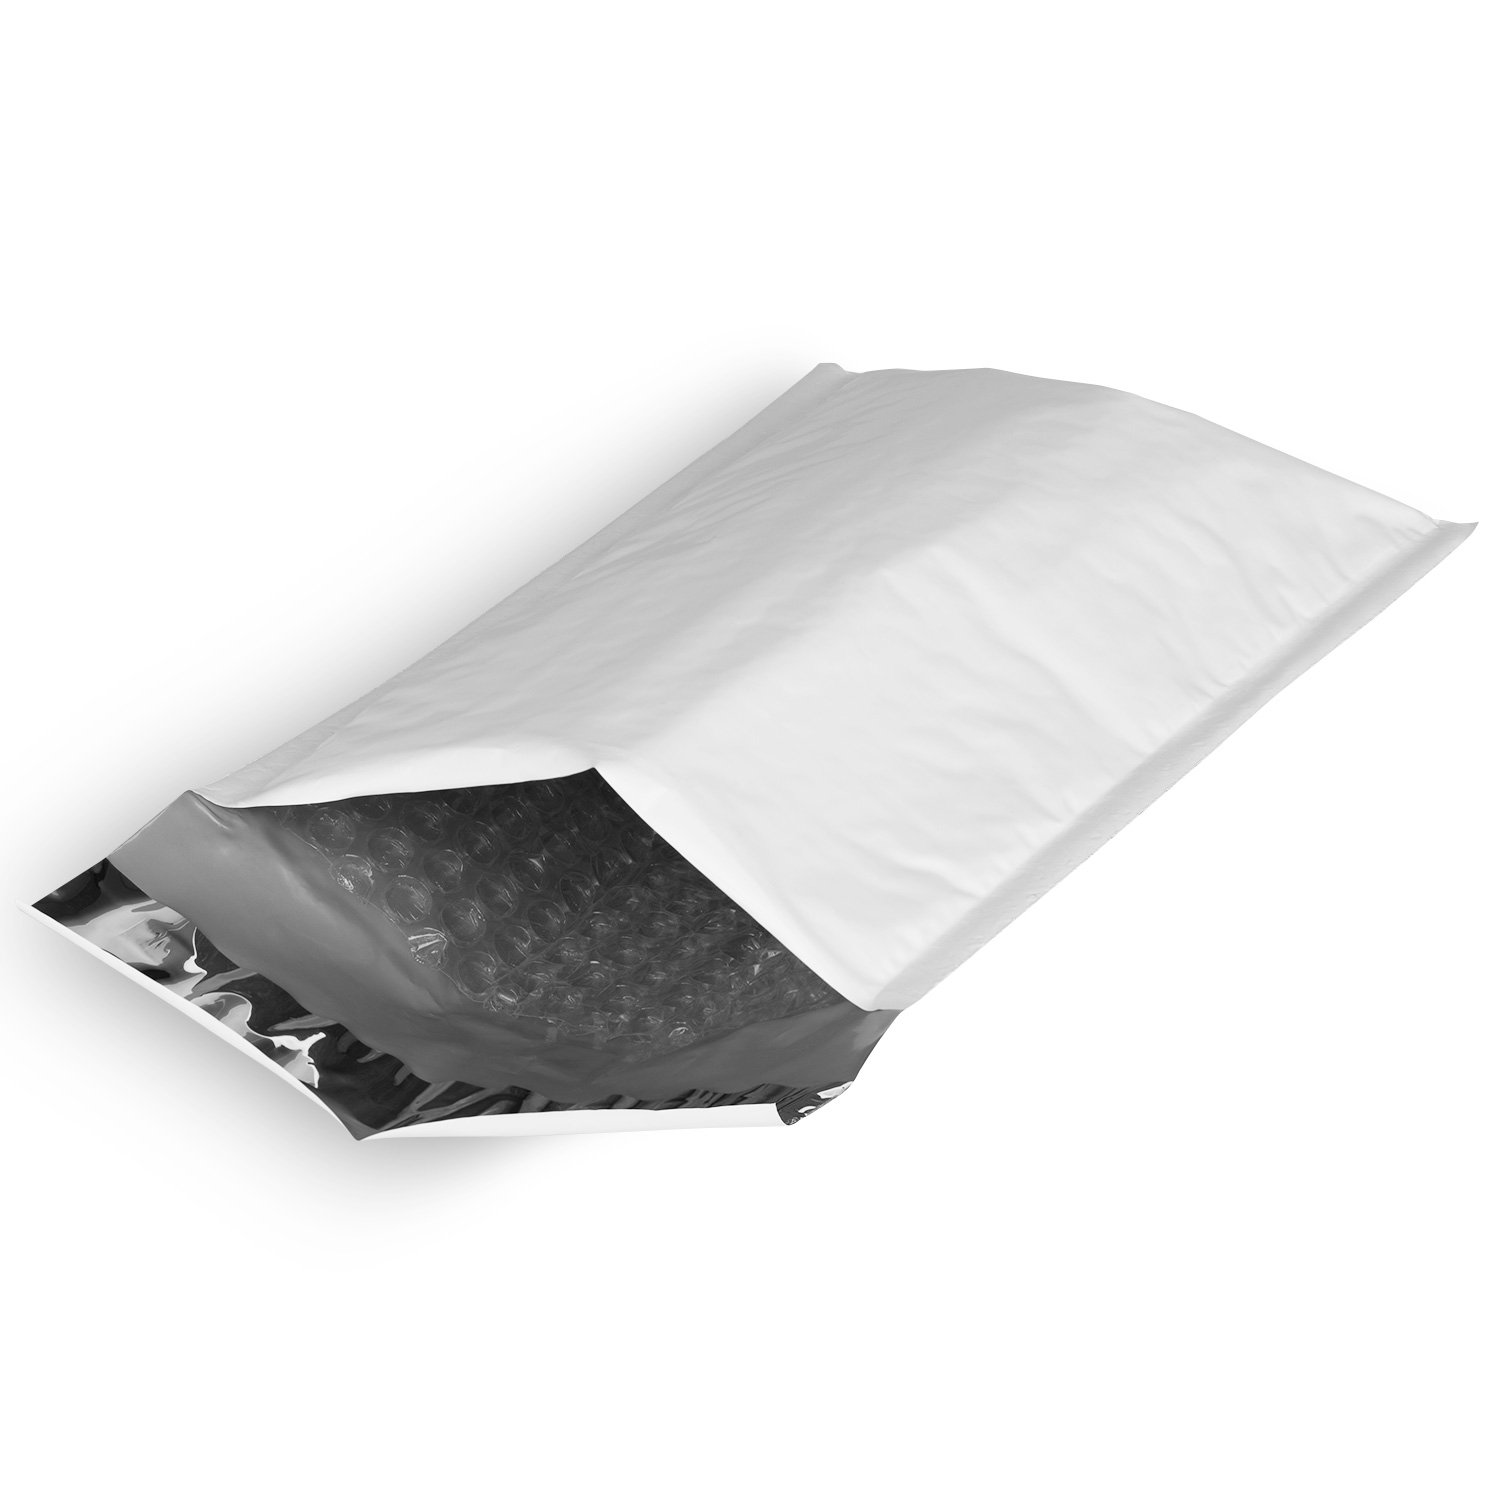 #0 Soft Shell Self-Seal Tear-Proof Poly Bubble Mailer - 6.5 x 10 in. (50 Pack) Fosmon Technology